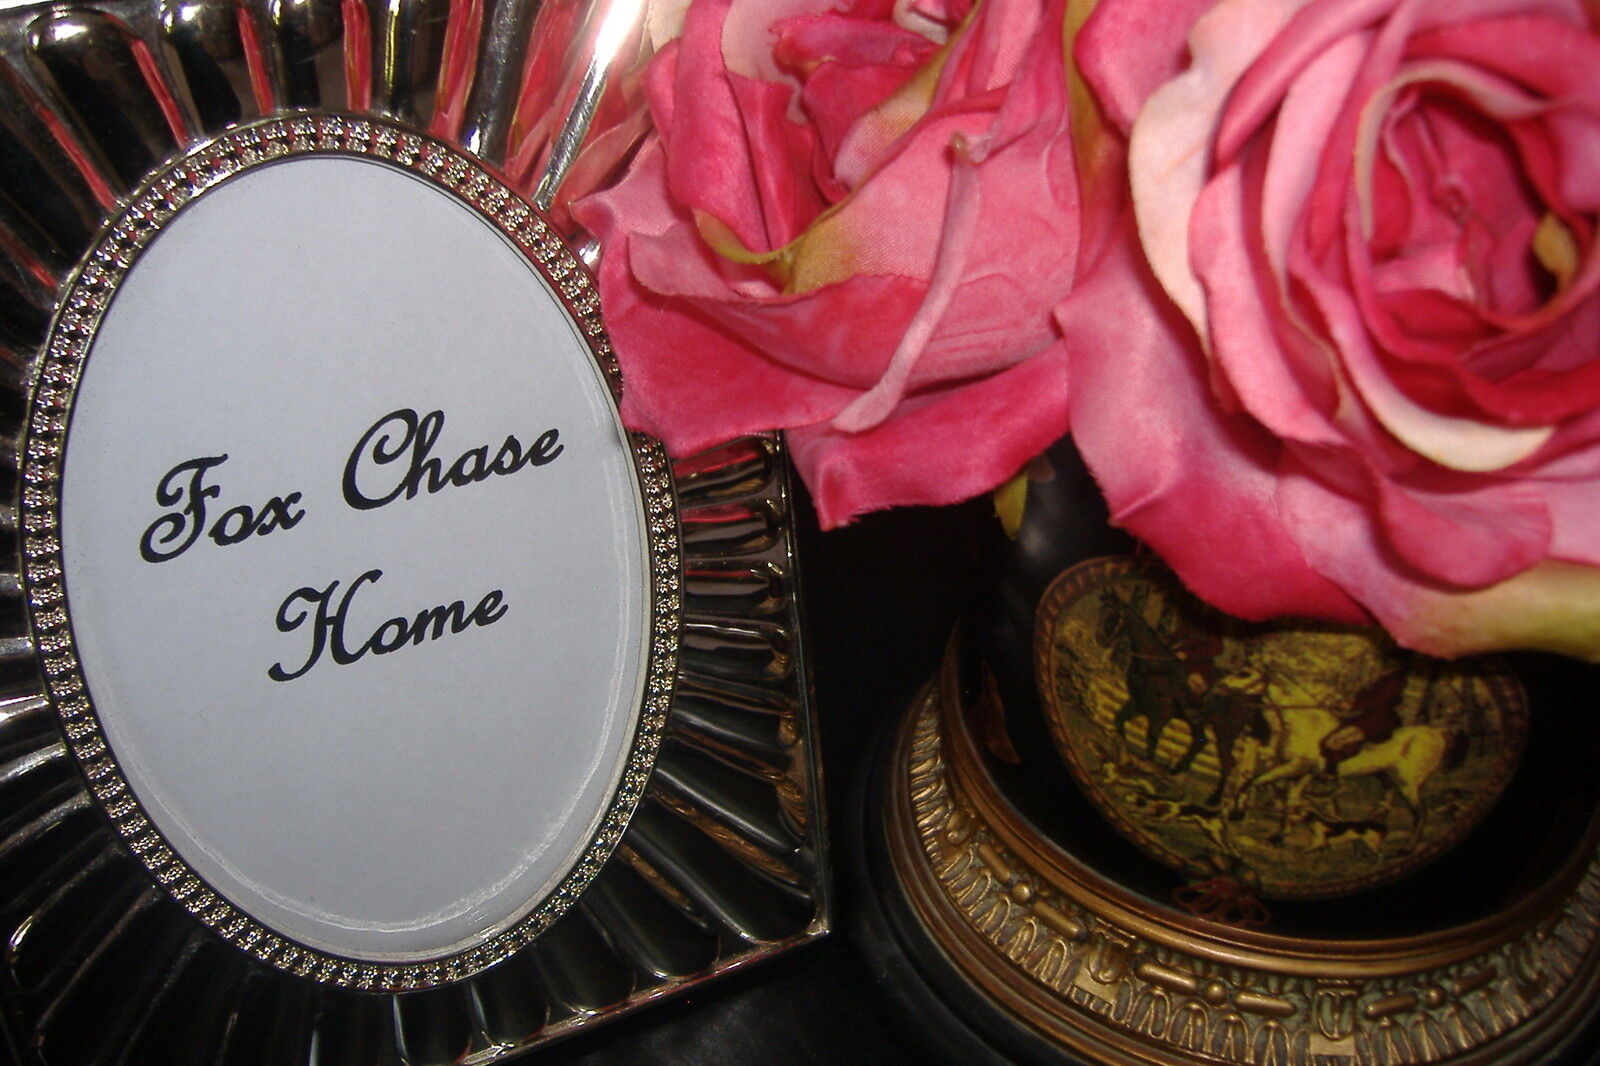 Fox Chase Home